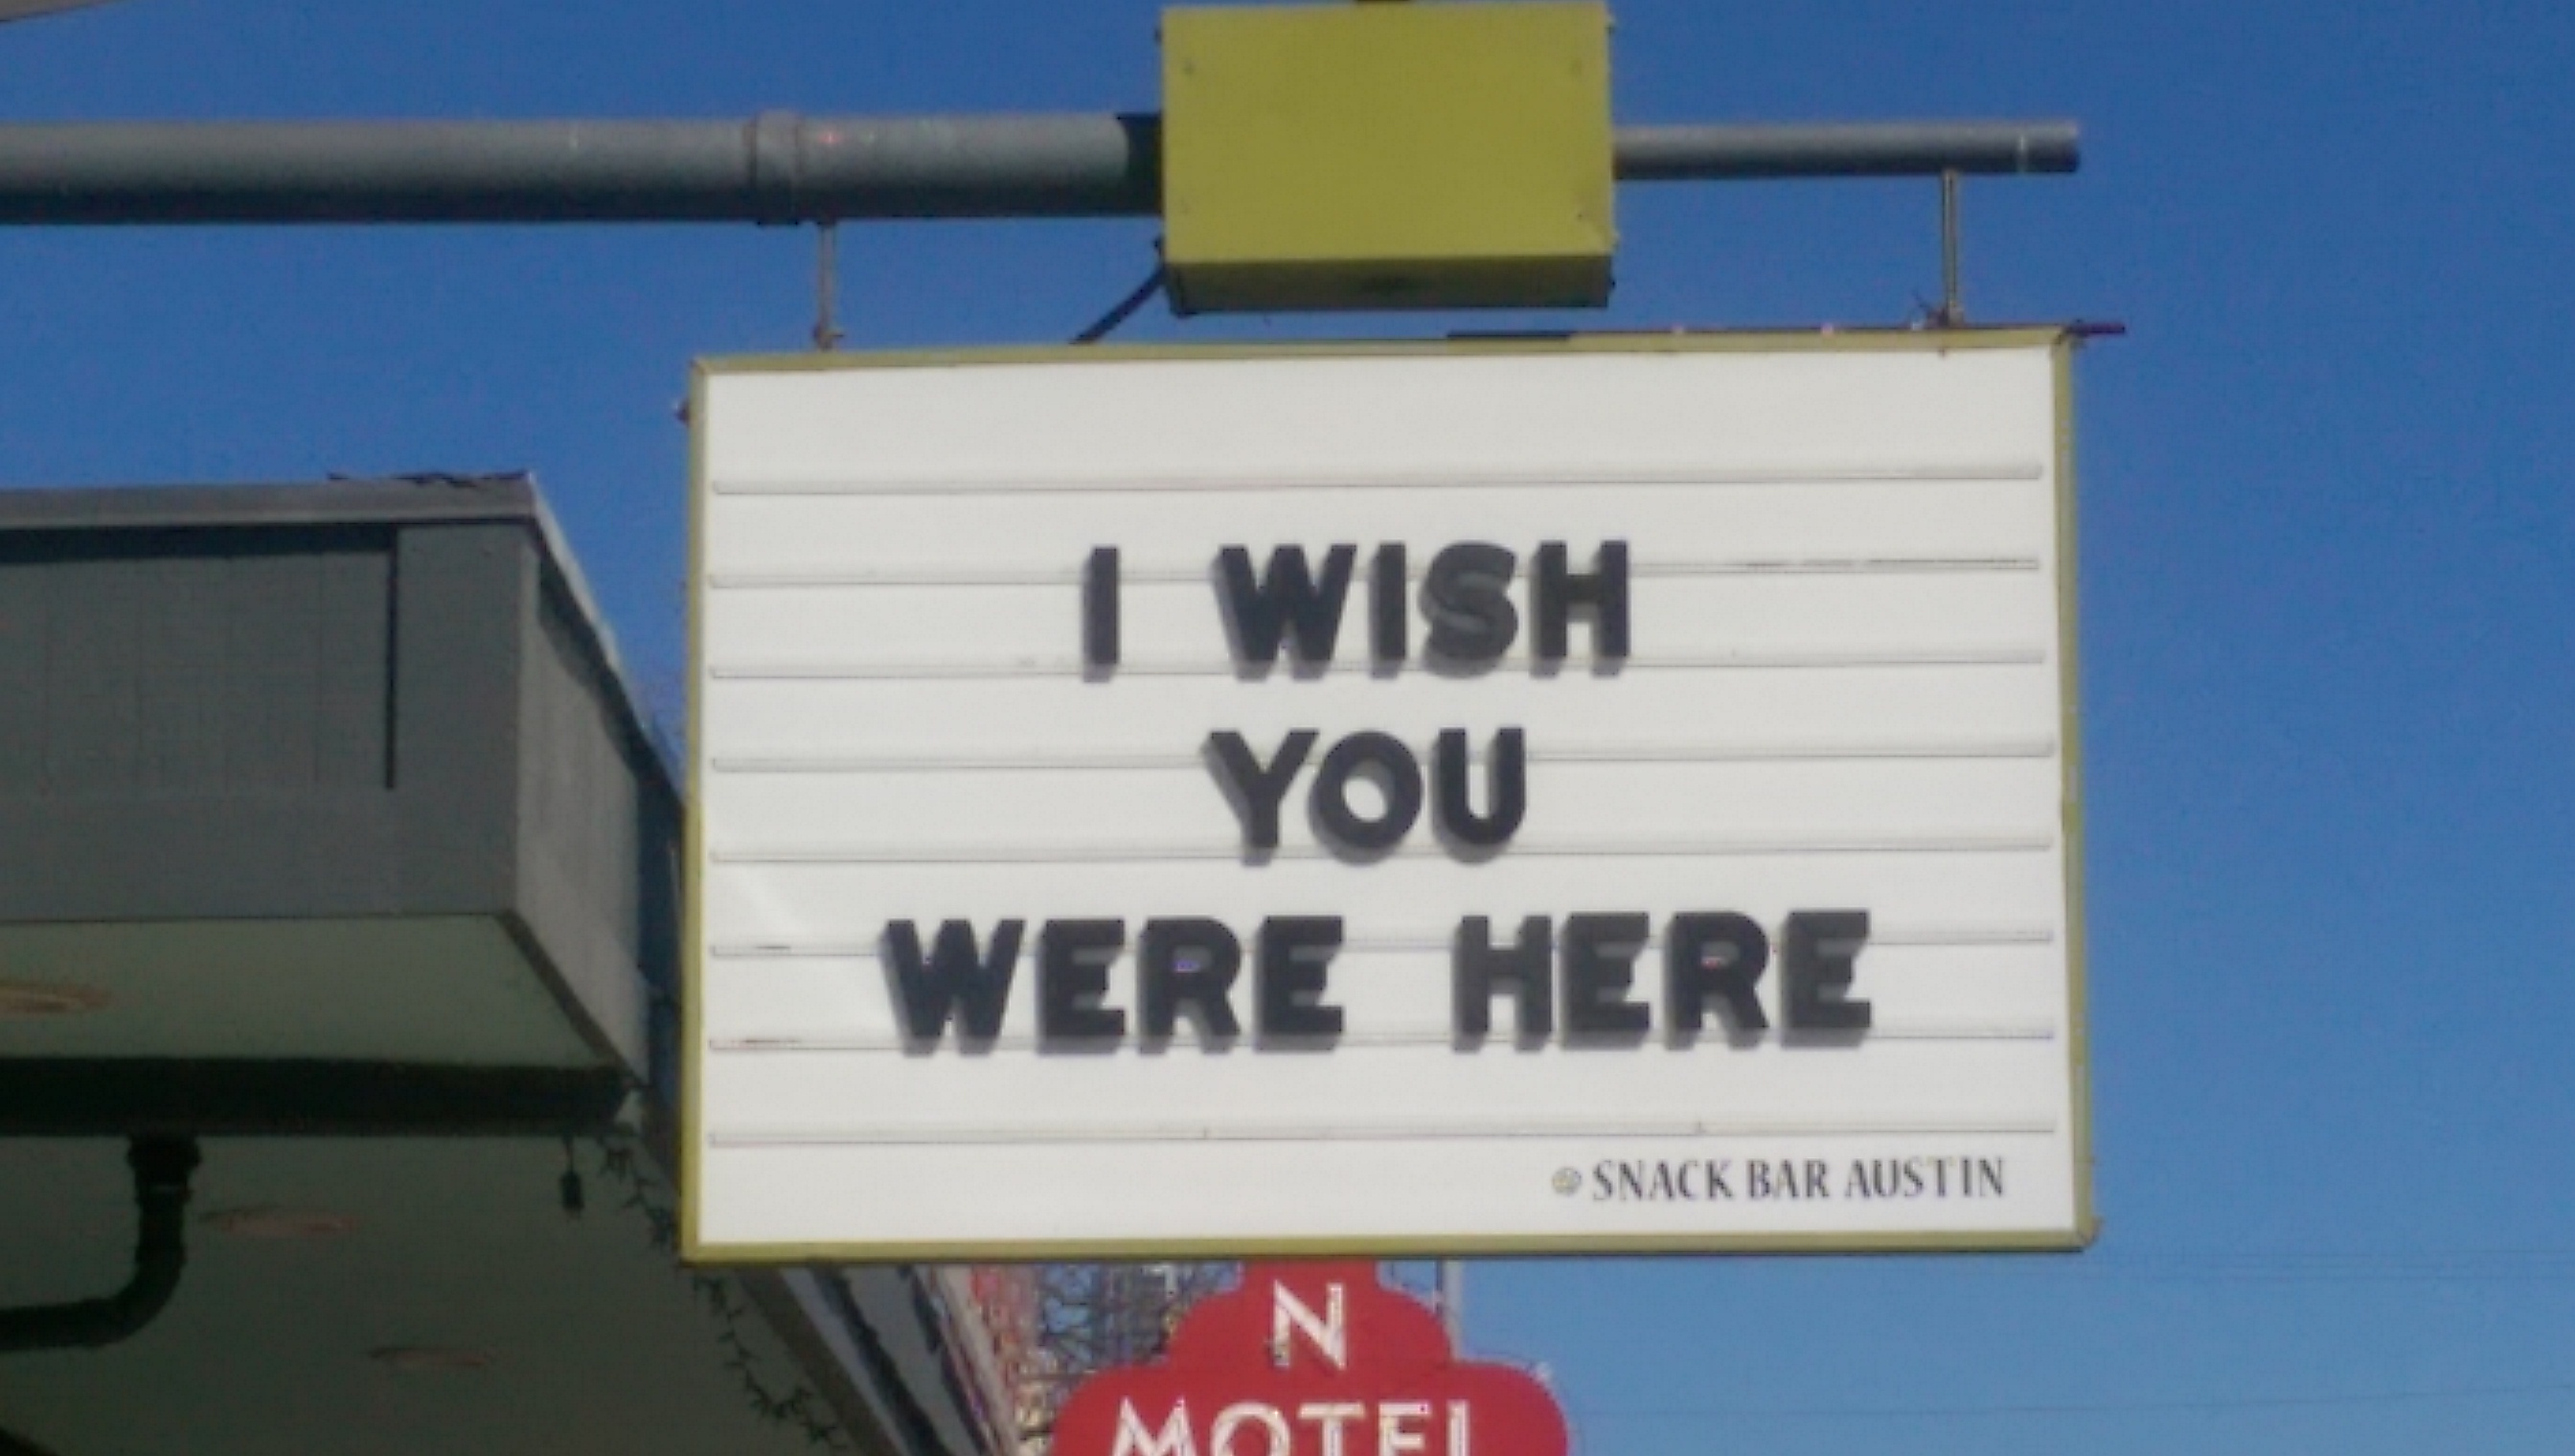 austin wish you were here